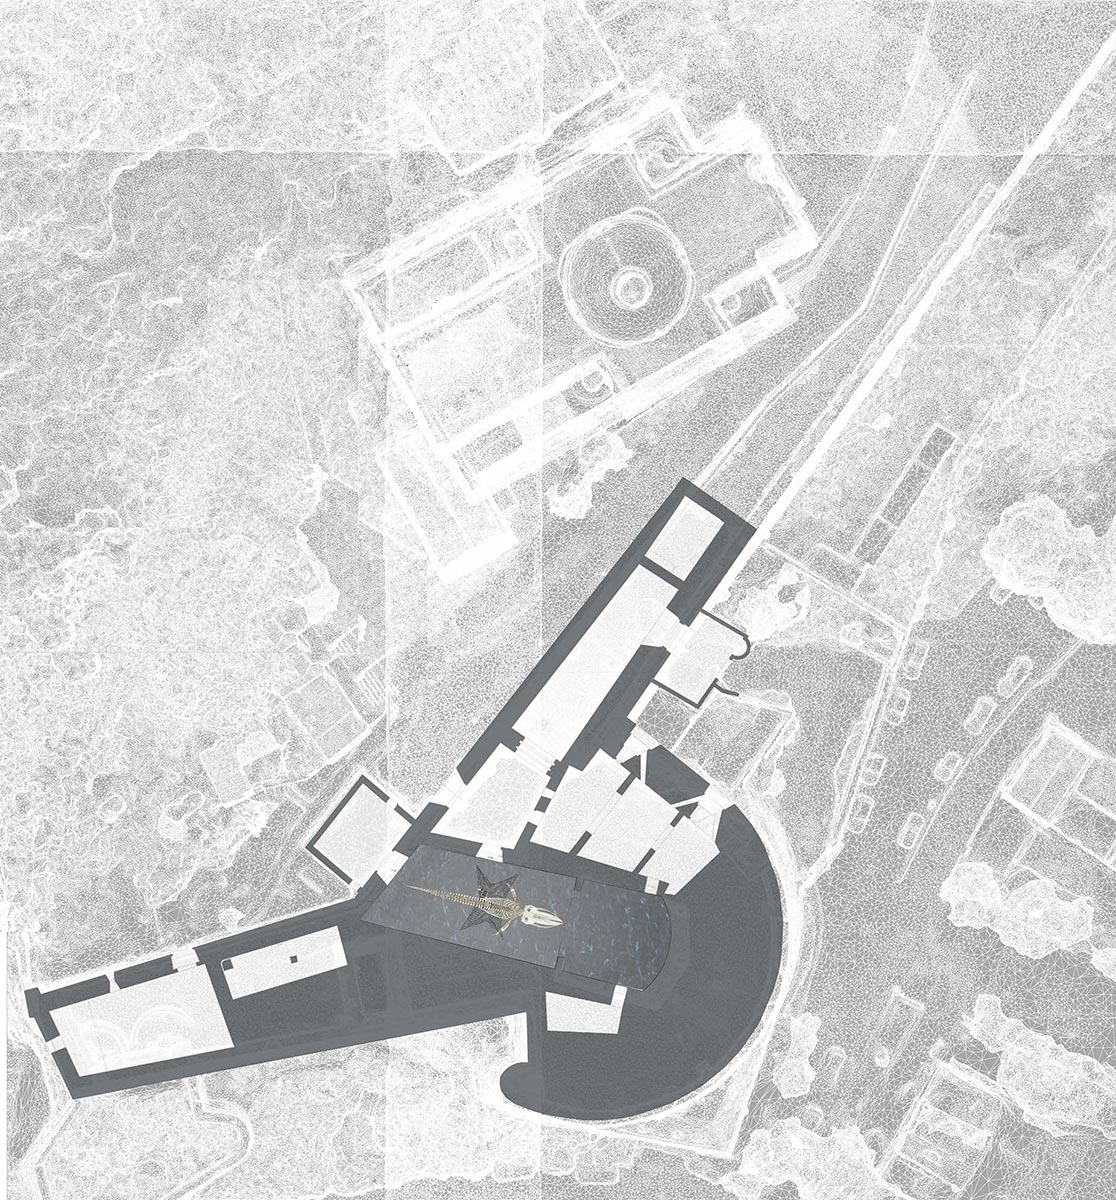 Merethe Granhus Drone Scan and Site Plan